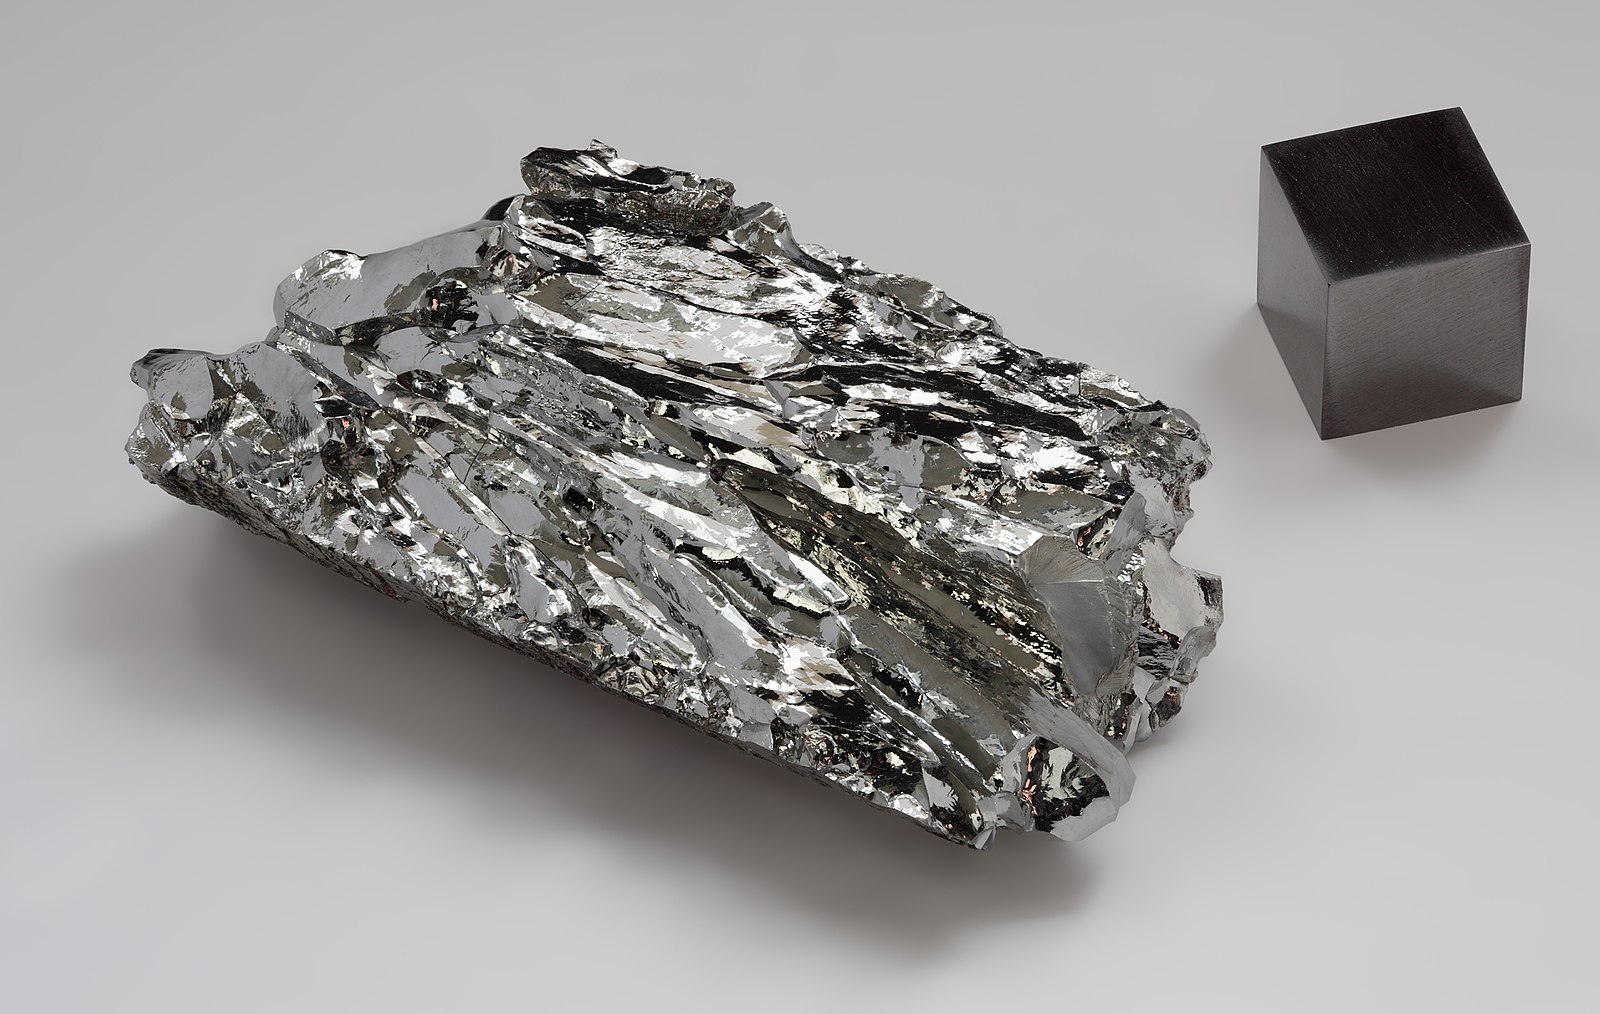 Facts About Molybdenum